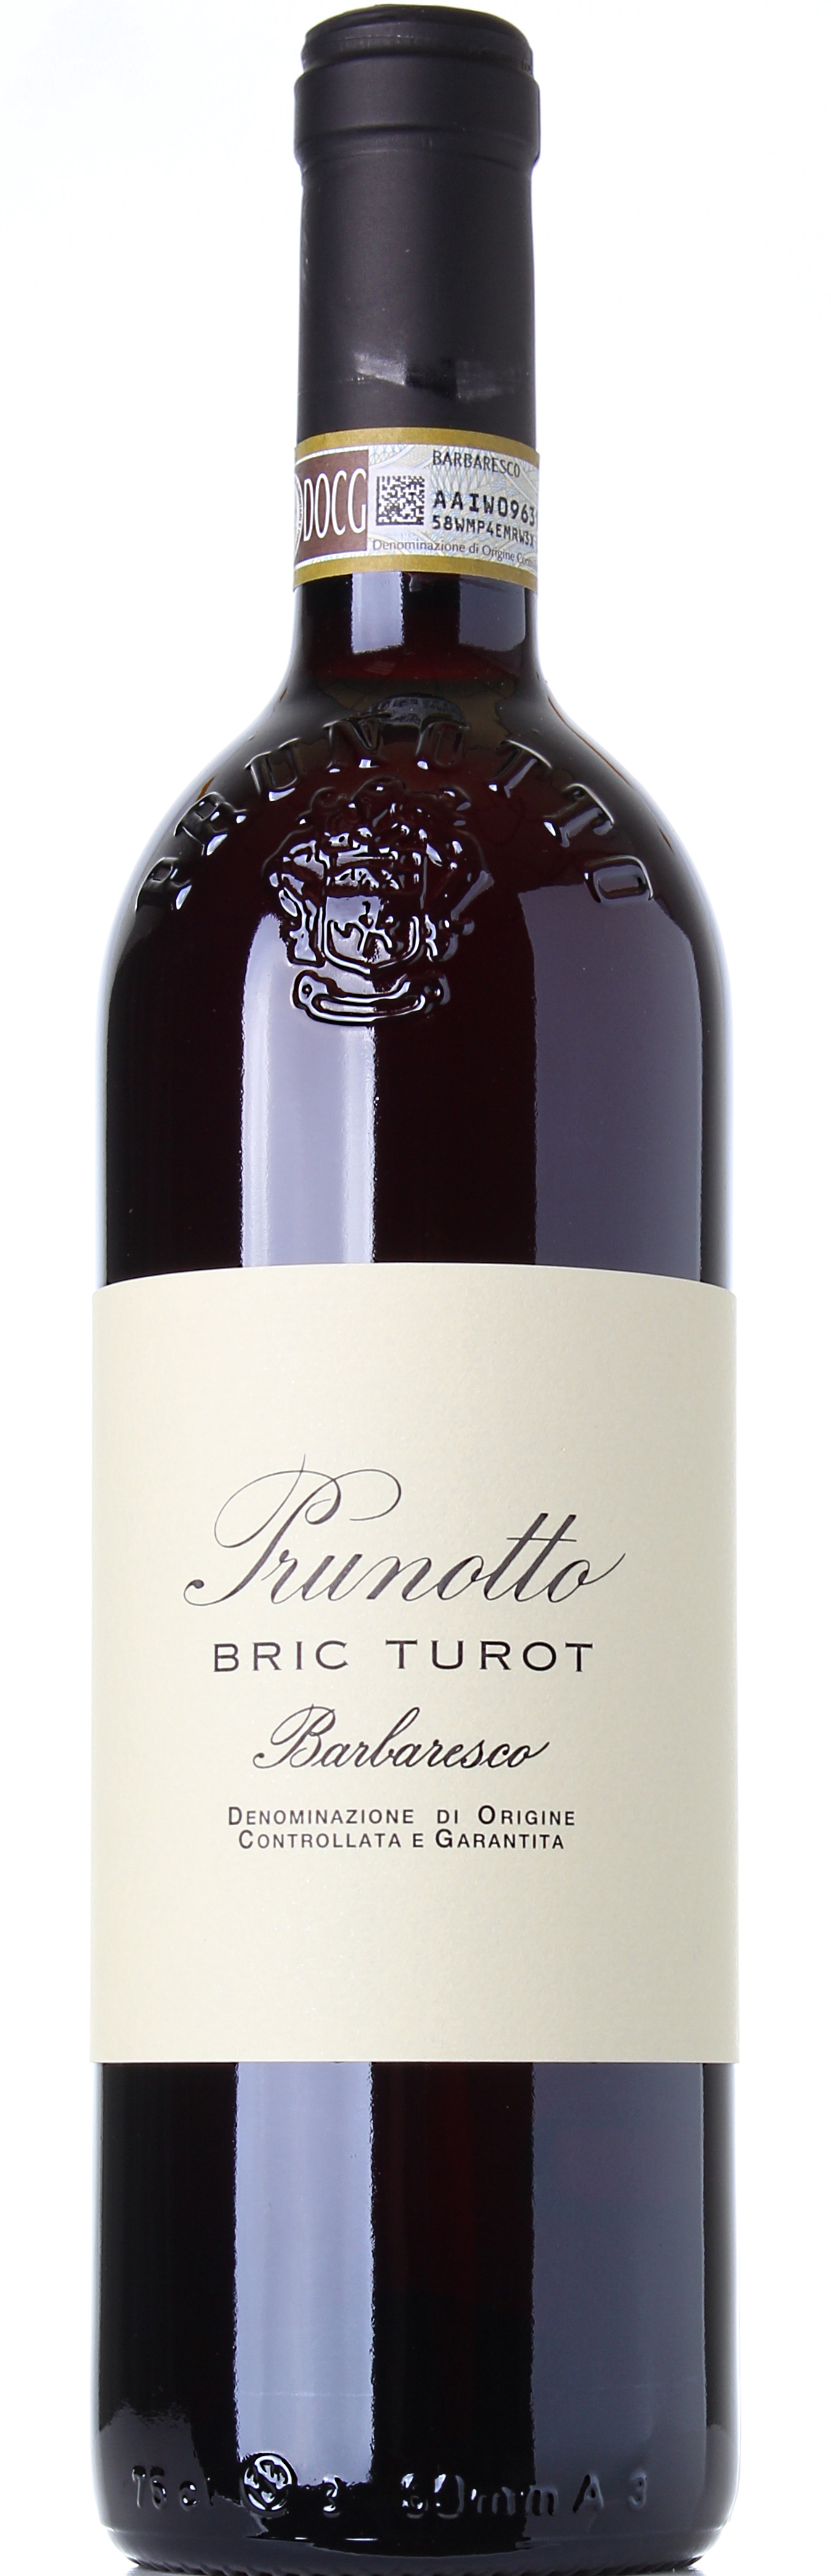 PRUNOTTO BARBARESCO BRIC TUROT 2011